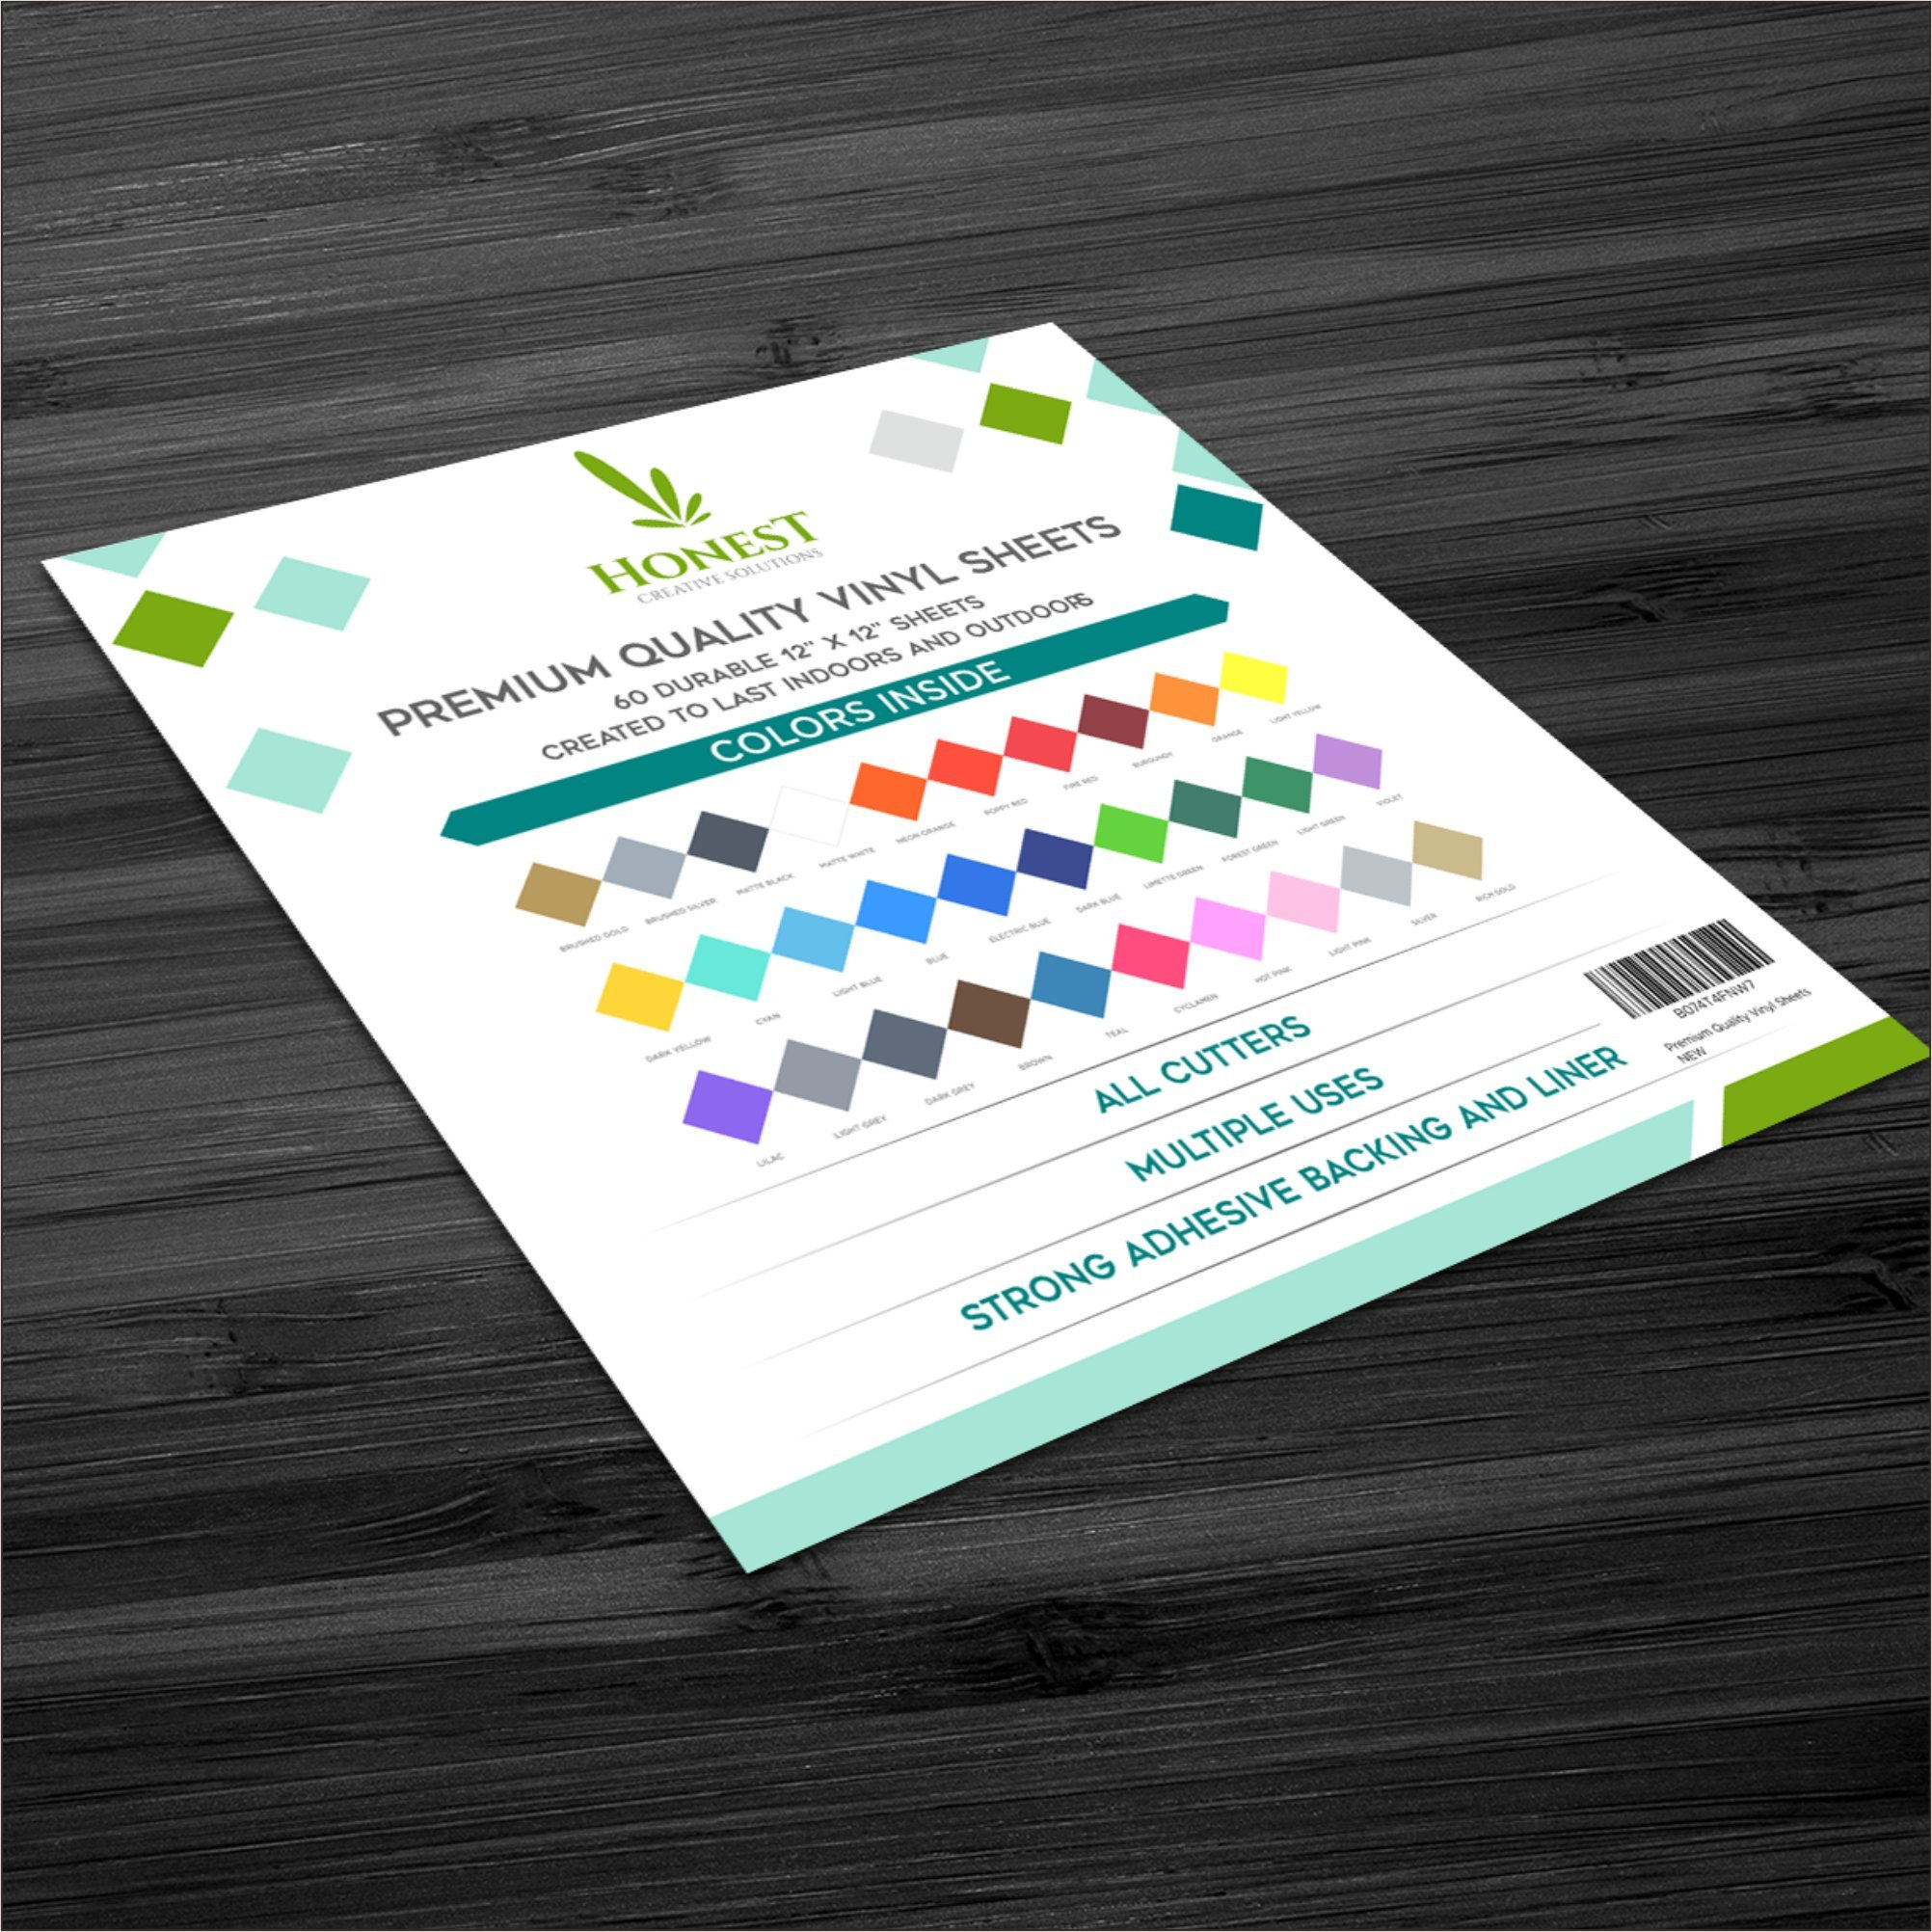 (NEW LAUNCH SPECIAL) Premium Permanent Adhesive Backed Vinyl Sheets- Honest Creative Solutions- 60 Sheets 12'' x 12'' Assorted Colors and Finishes works with all Craft Cutters